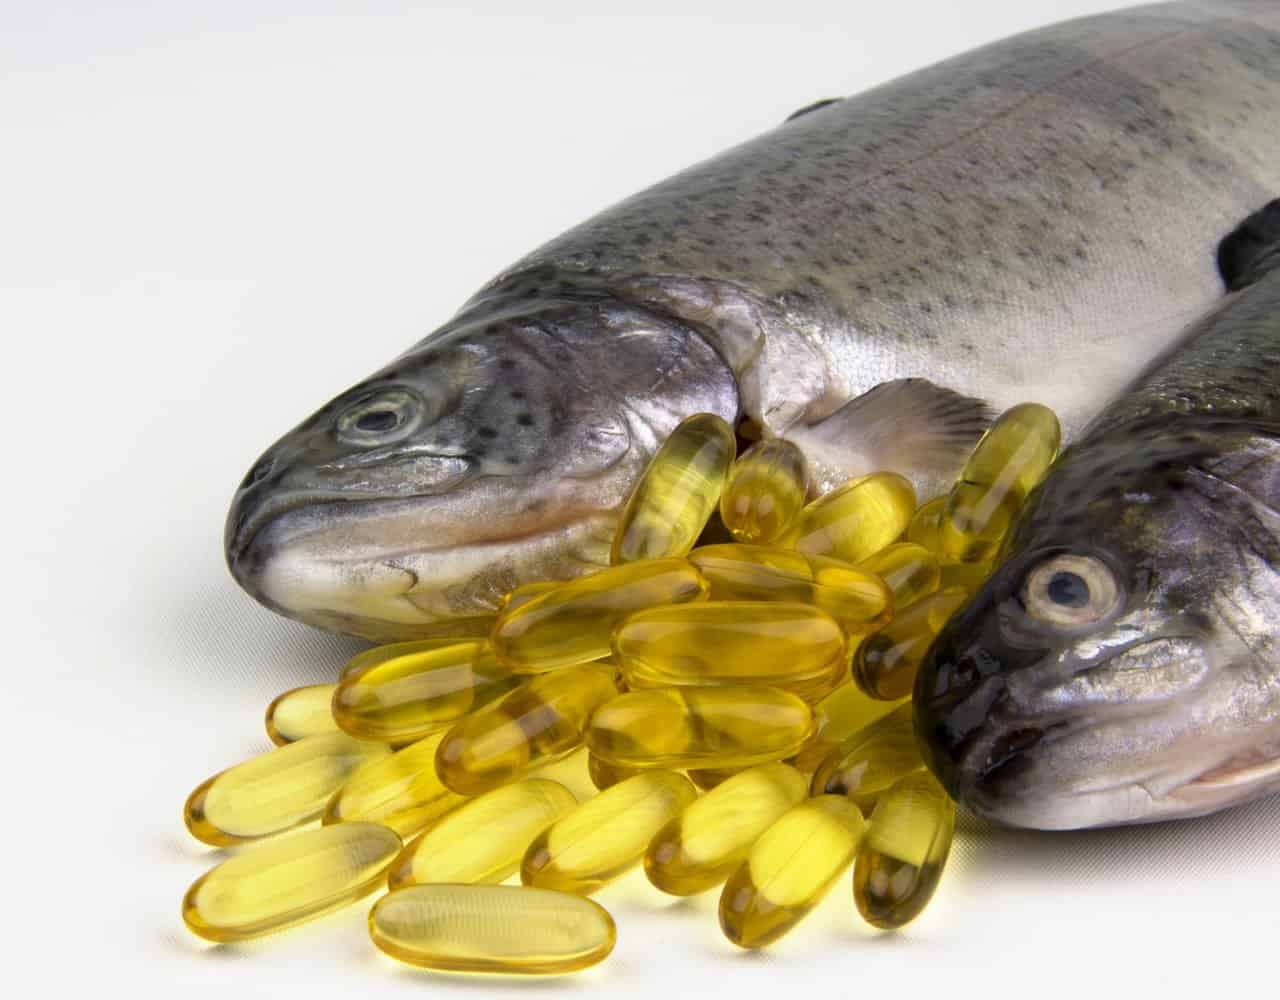 Fish oil capsules next to raw fish.